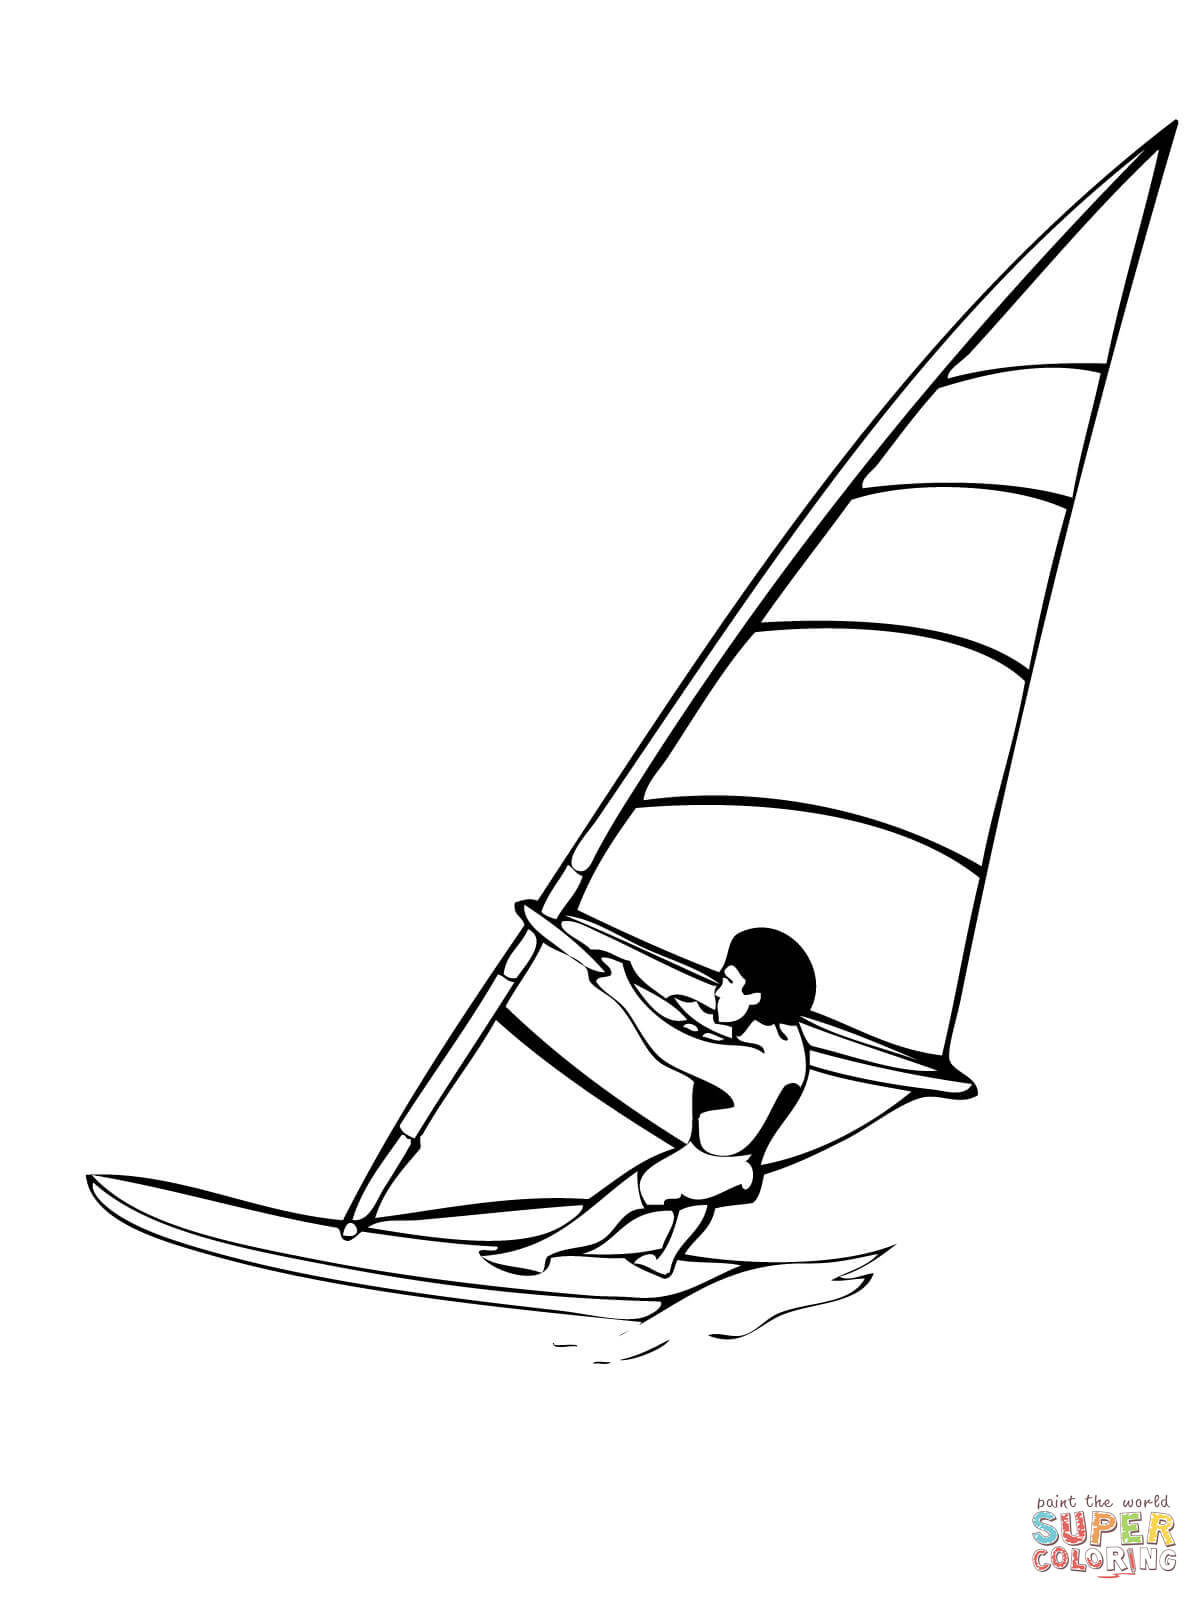 Windsurfing Coloring Page